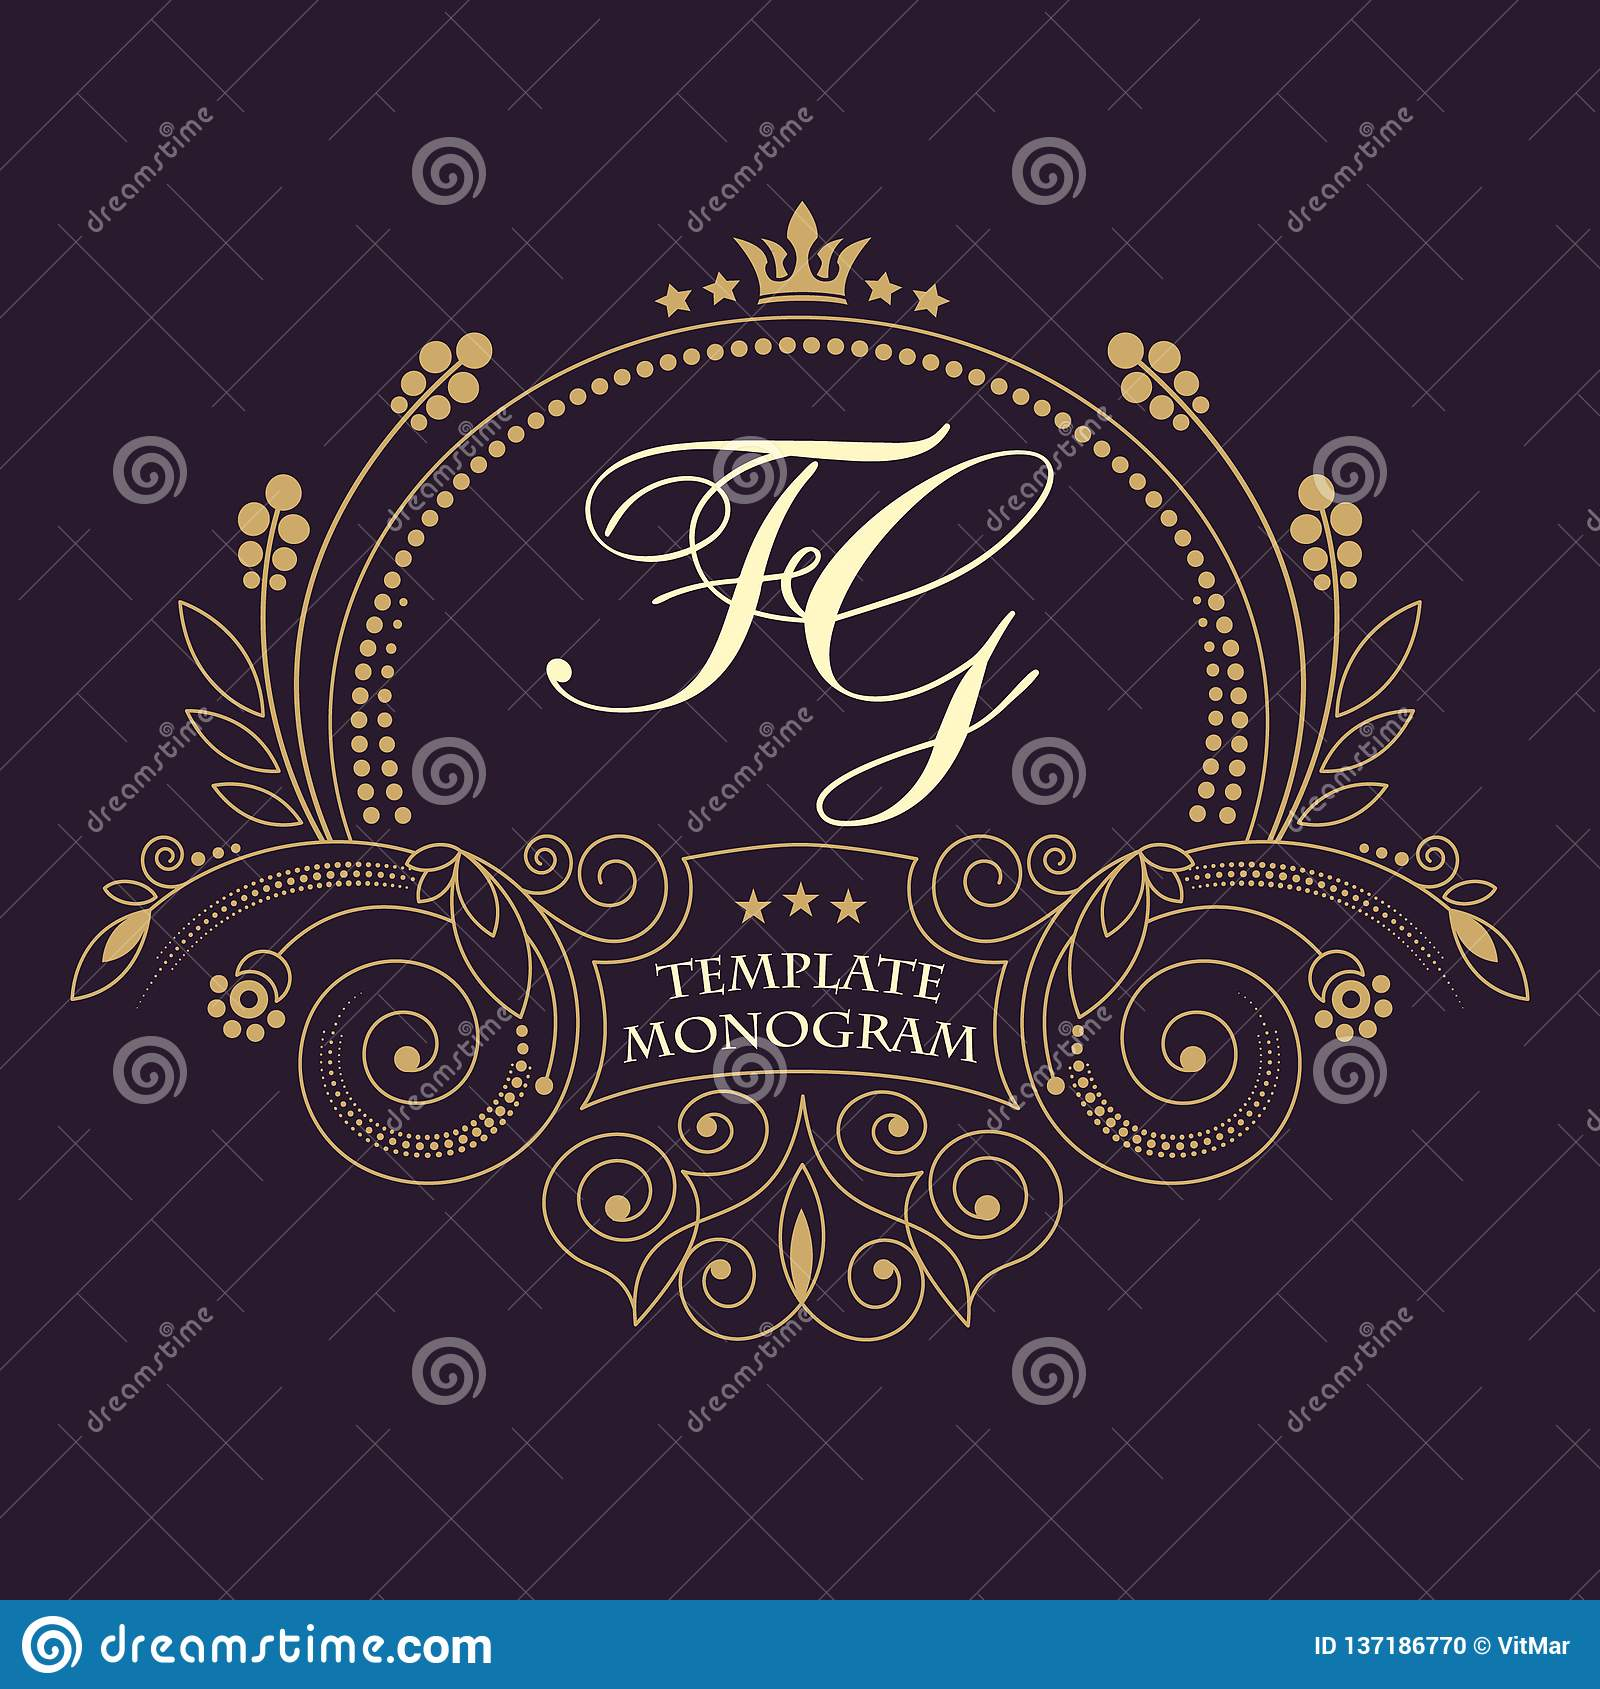 76f6e0260a66 Flourishes calligraphic wedding monogram emblem template. Luxury elegant  frame ornament line logo design vector illustration.